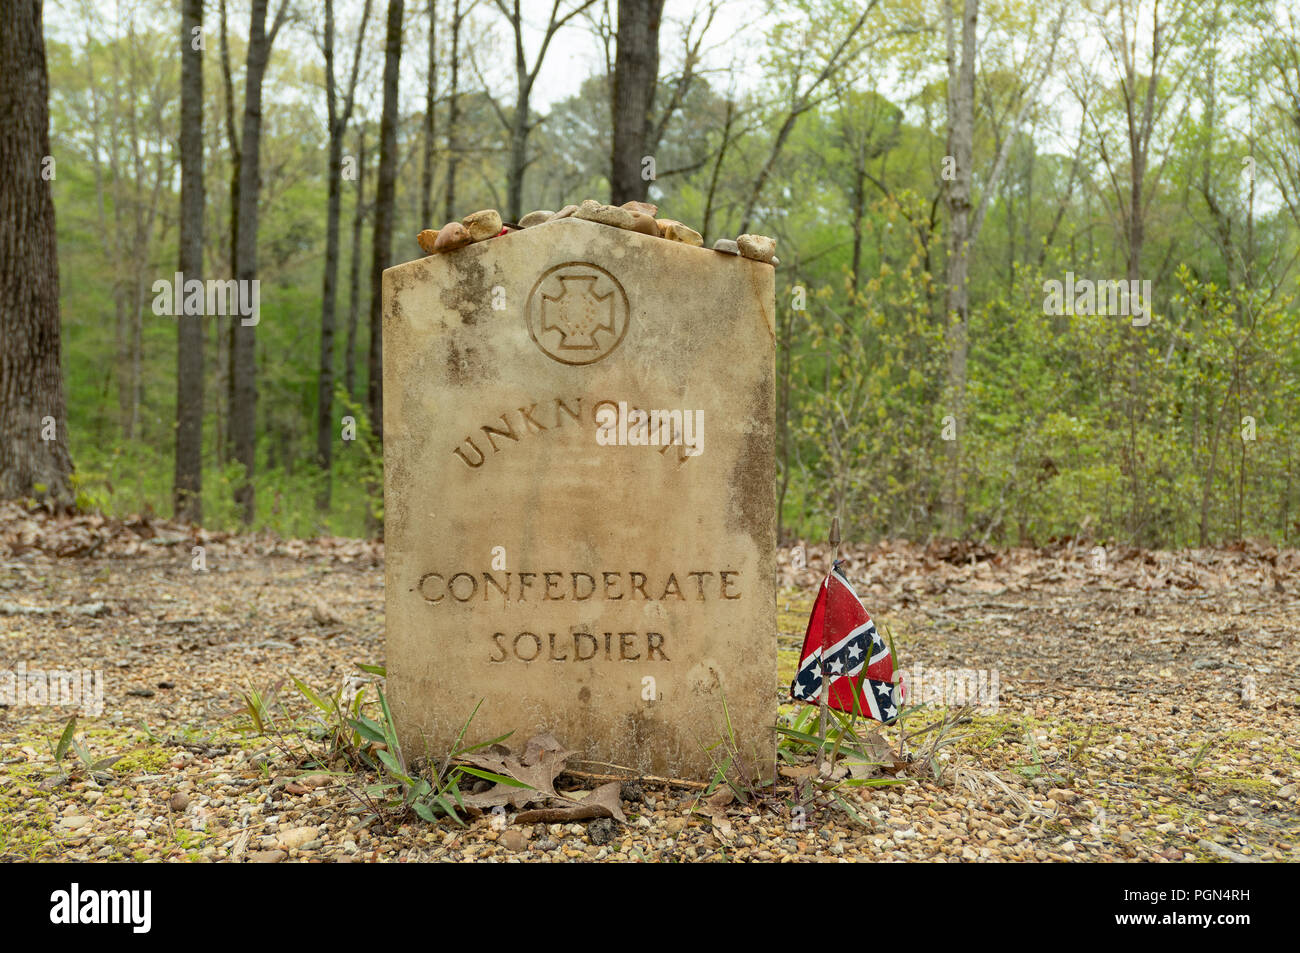 Gravestone for Unknown Confederate Soldier. Natchez Trace Parkway, Mile 269, near Tupelo, Mississippi, USA. - Stock Image